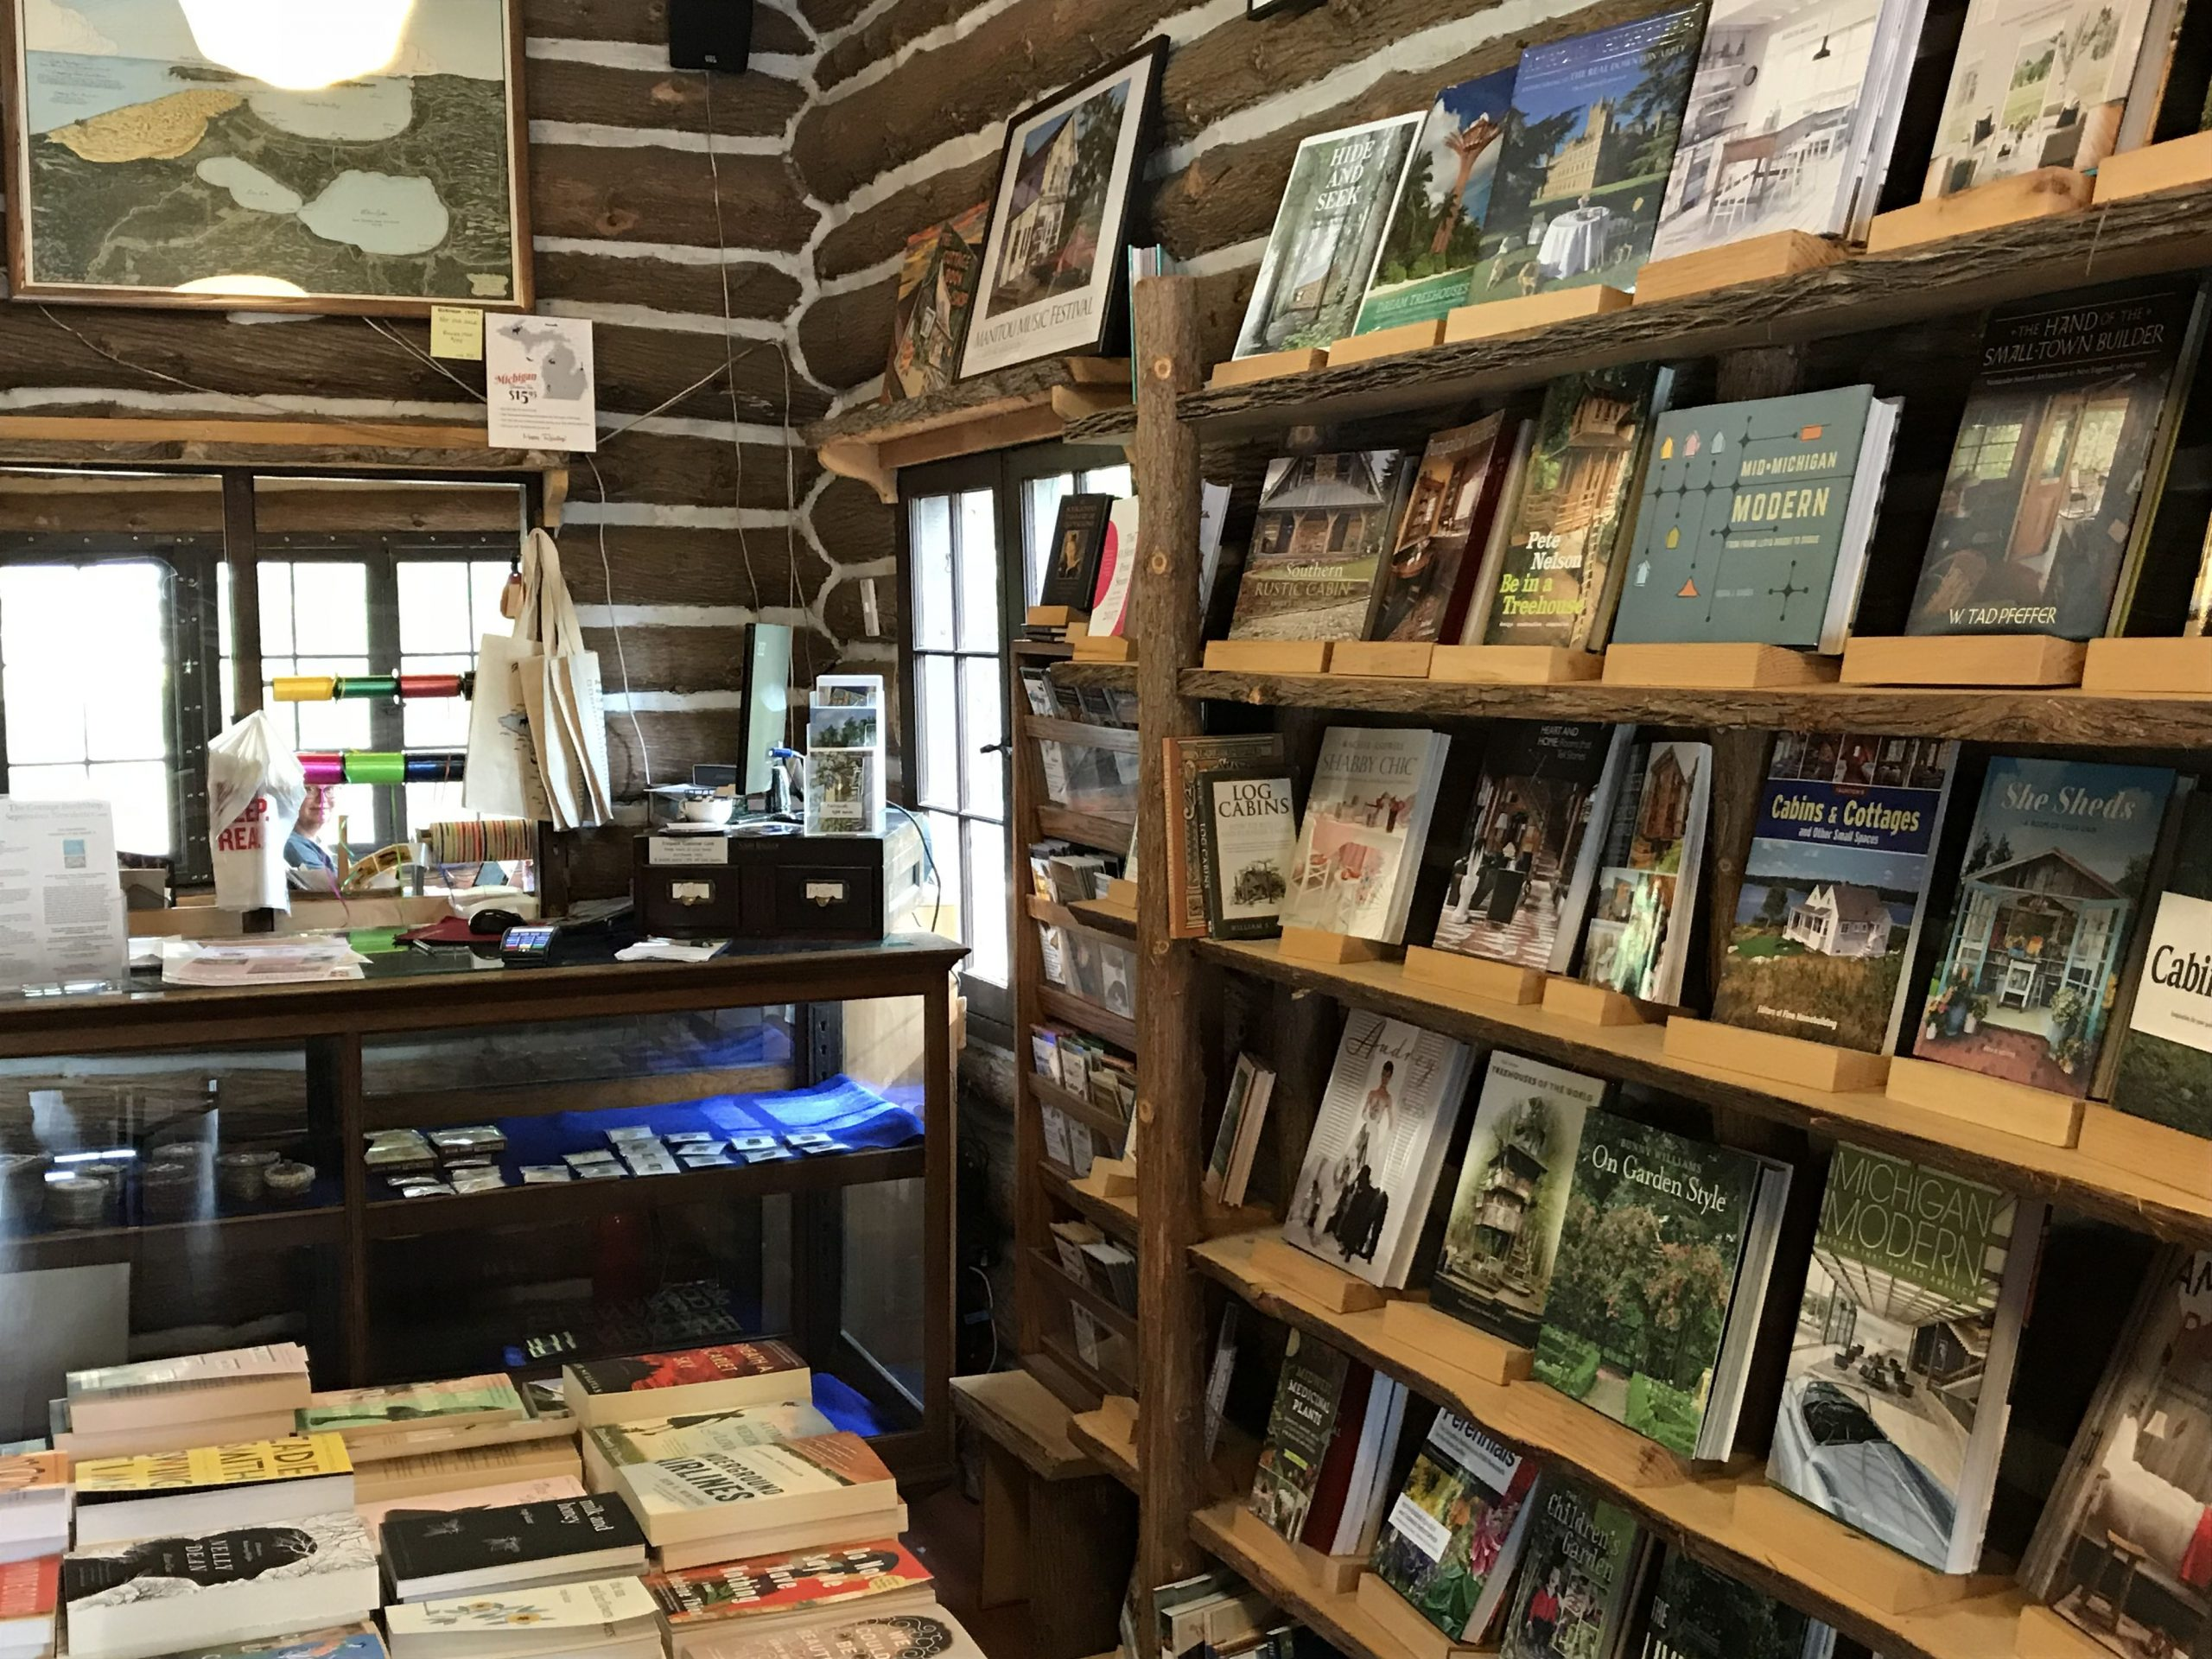 The main room of The Cottage Book Shop with shelves and tables filled with books from which to choose.